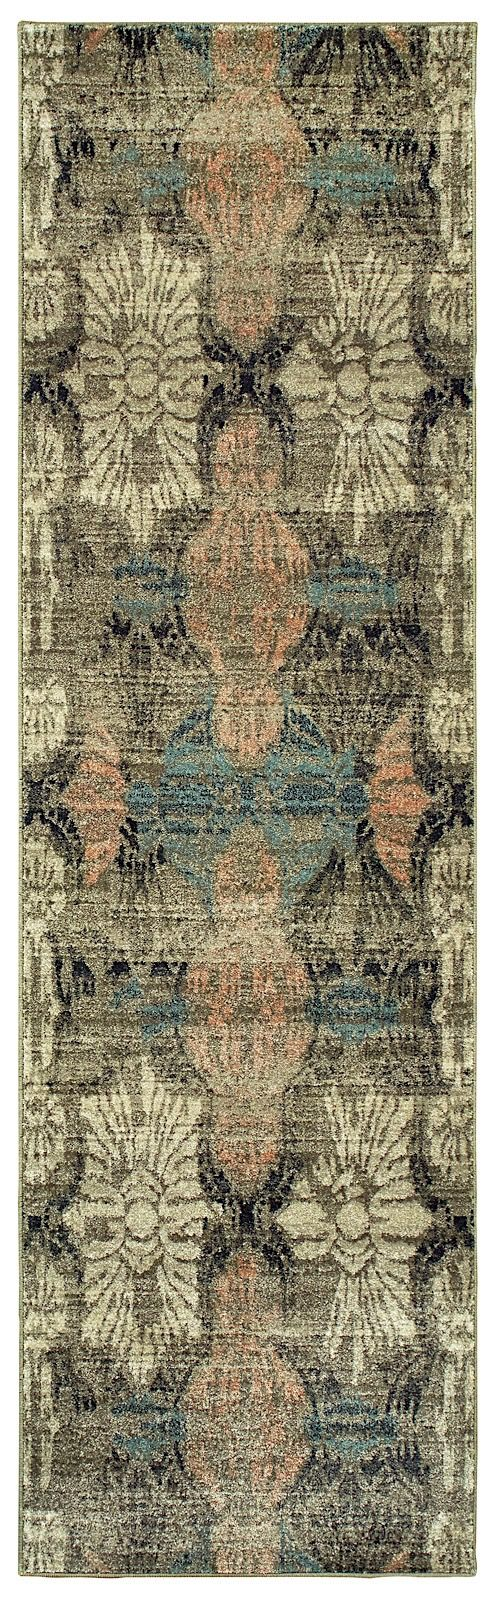 oriental weavers raleigh country & floral area rug collection